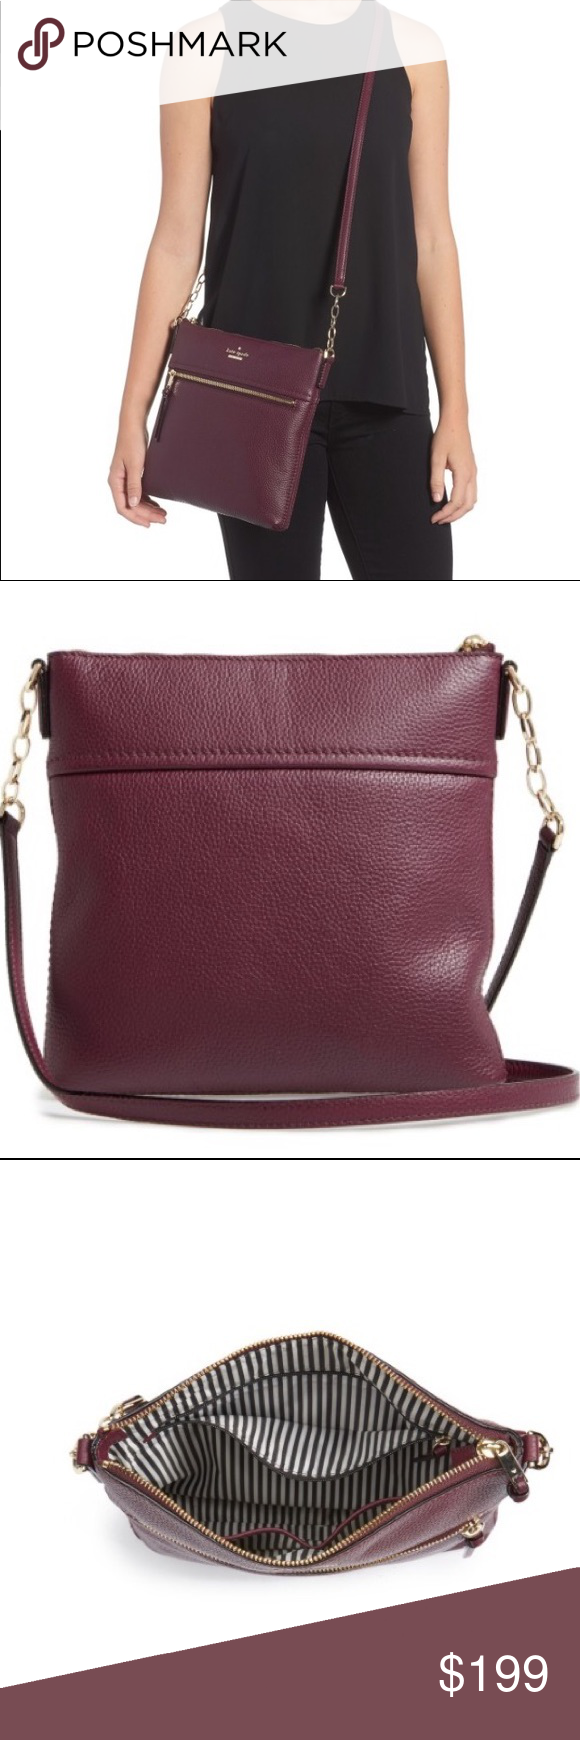 4b4d2ceacb Kate Spade Burgundy Leather Crossbody Bag NWT This bag is so on trend